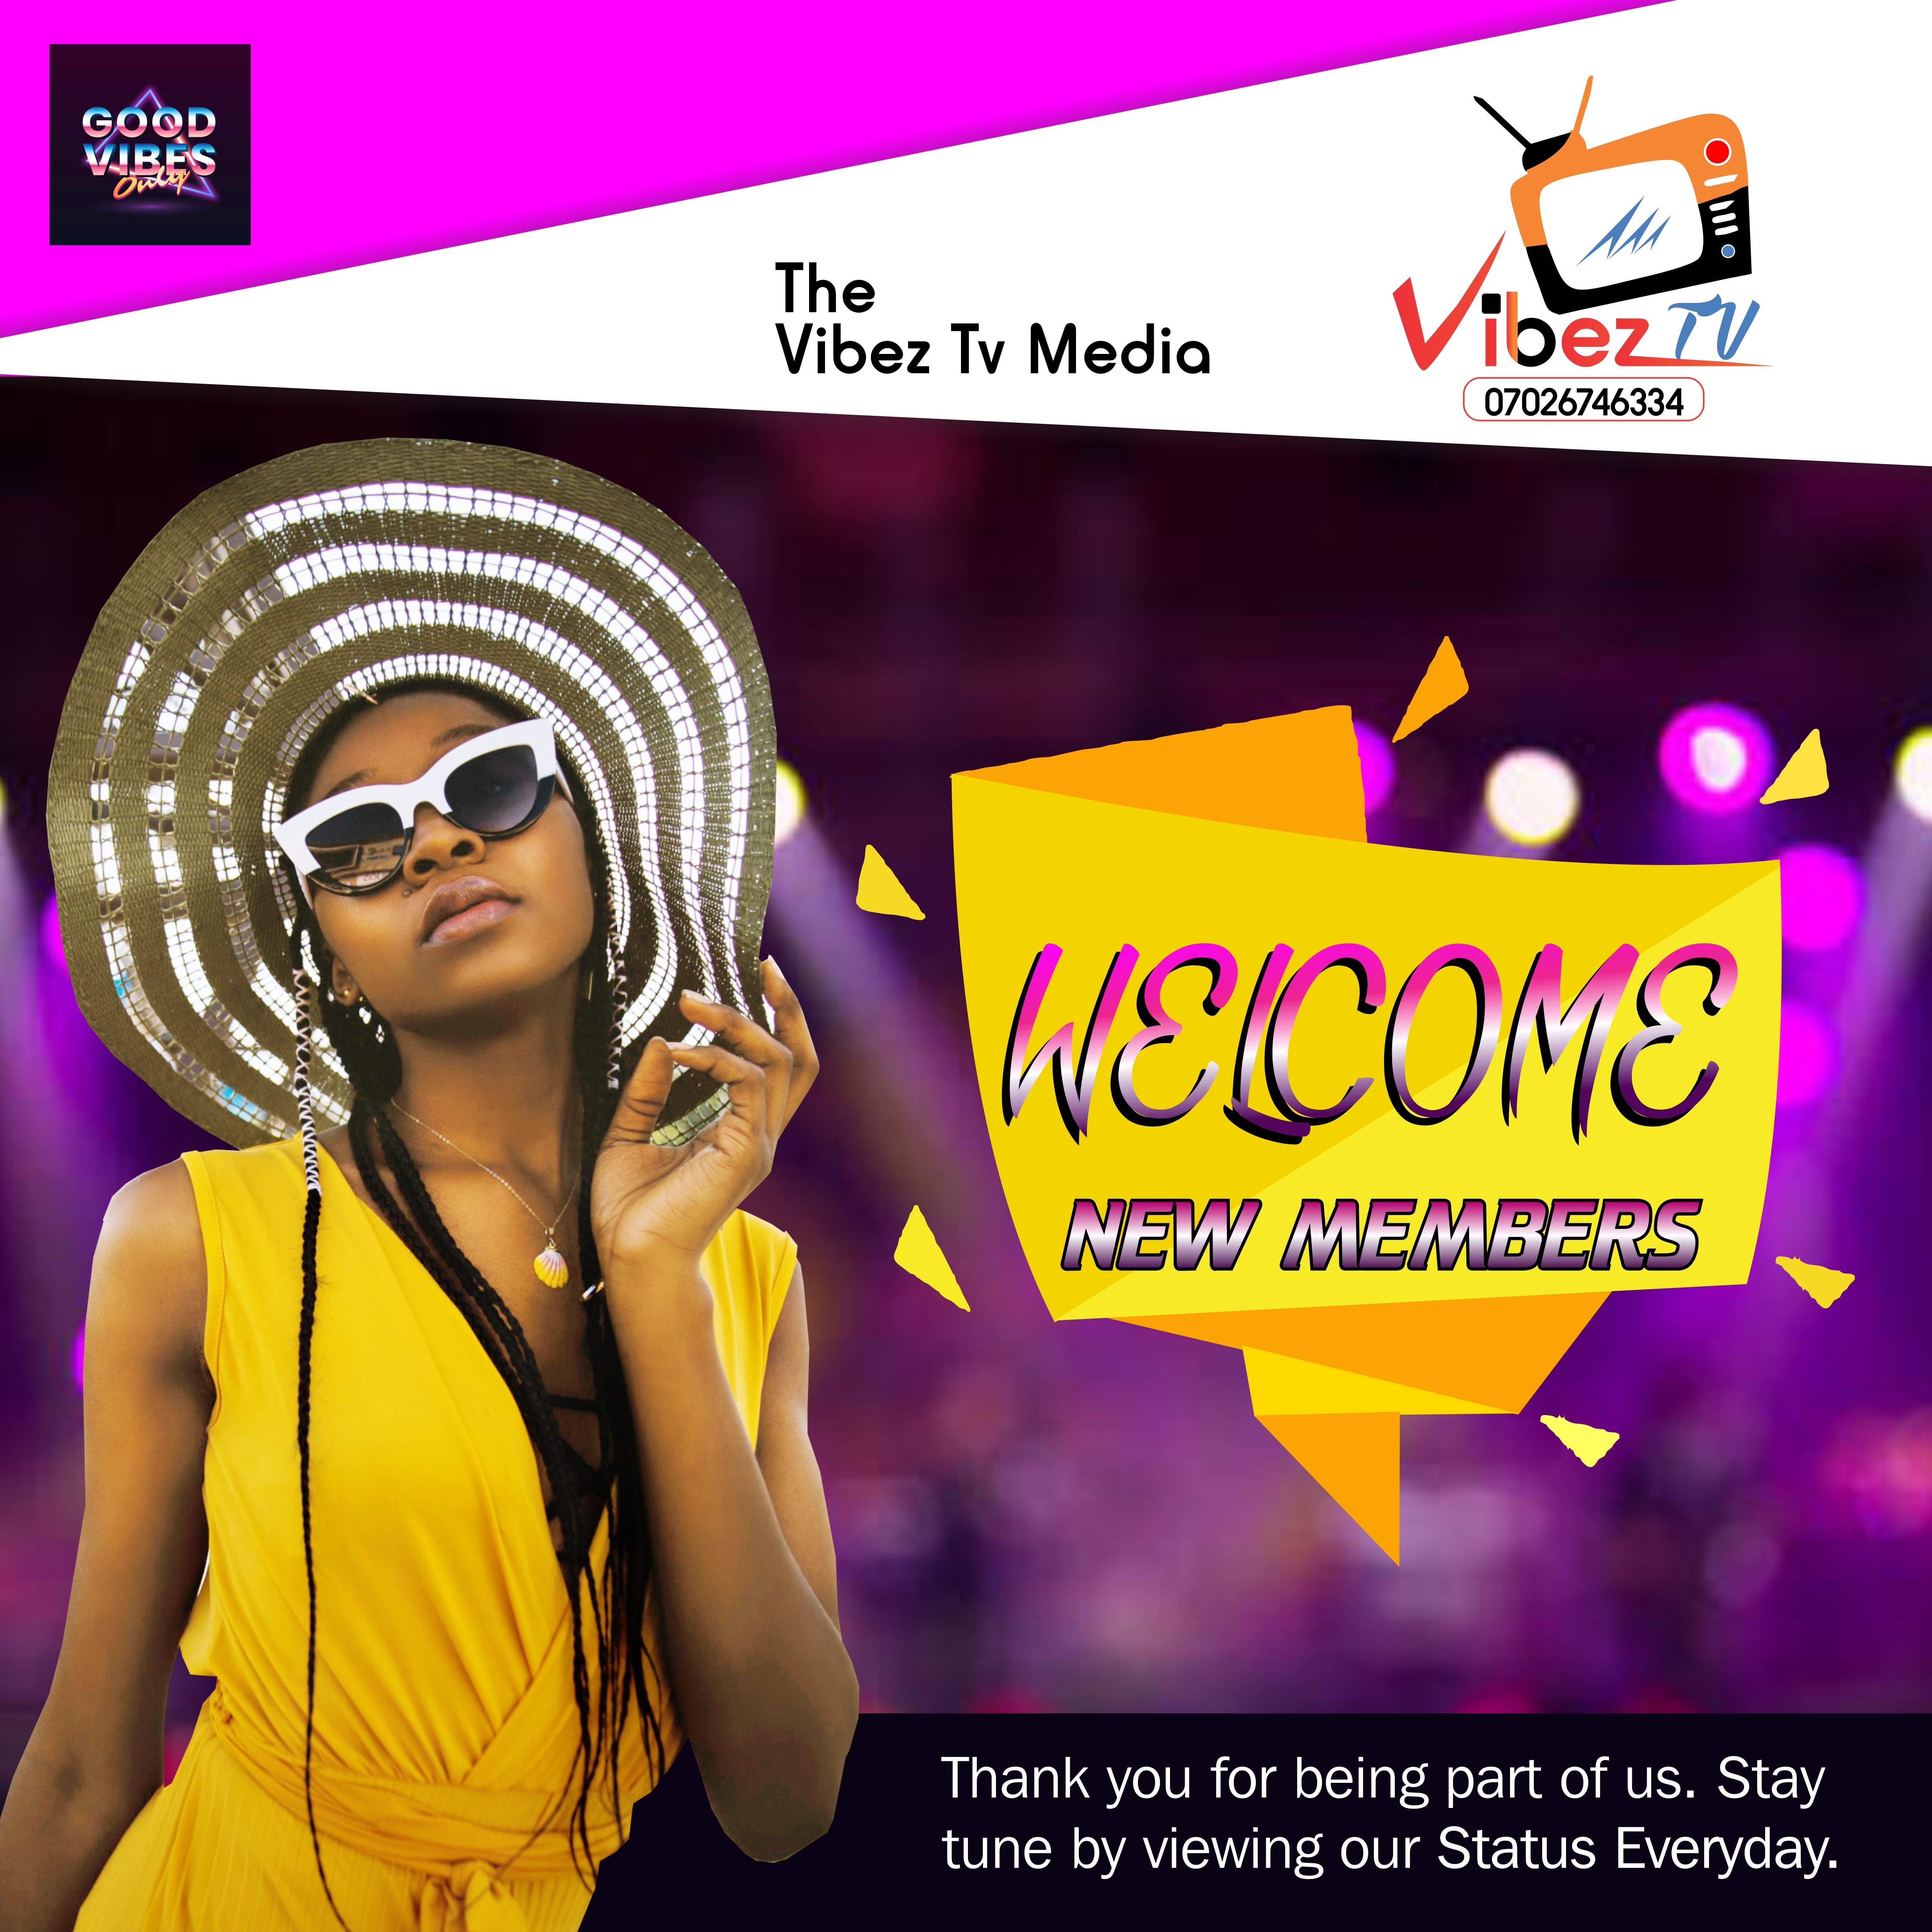 VIBES TV WELCOME 1